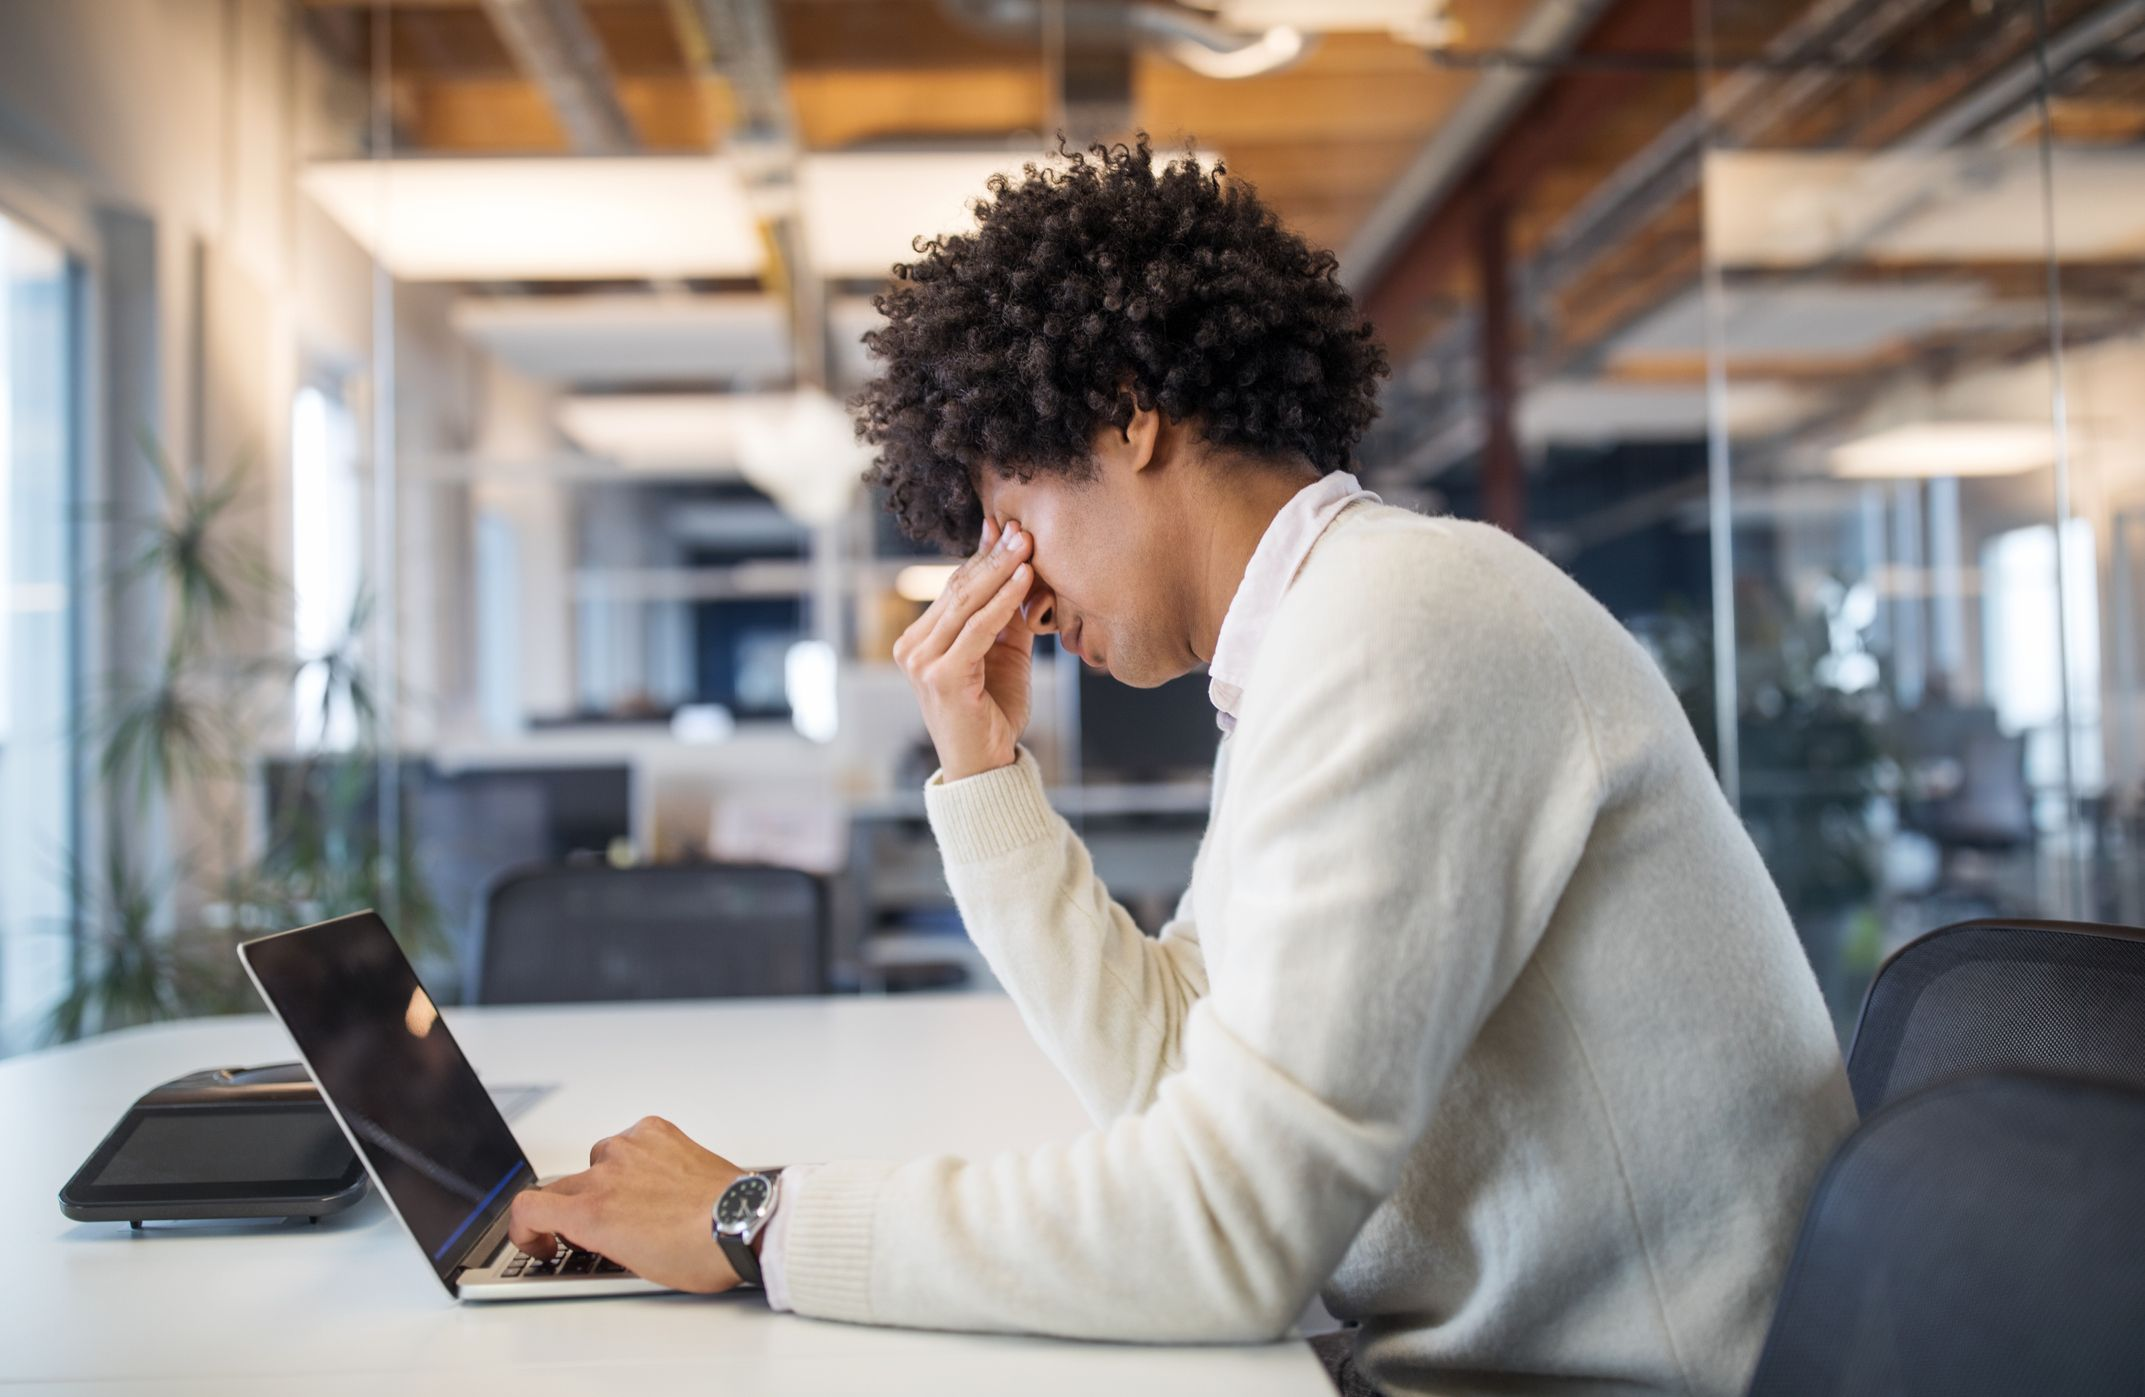 Work-Related Stress Can Cause Chronic Back Pain